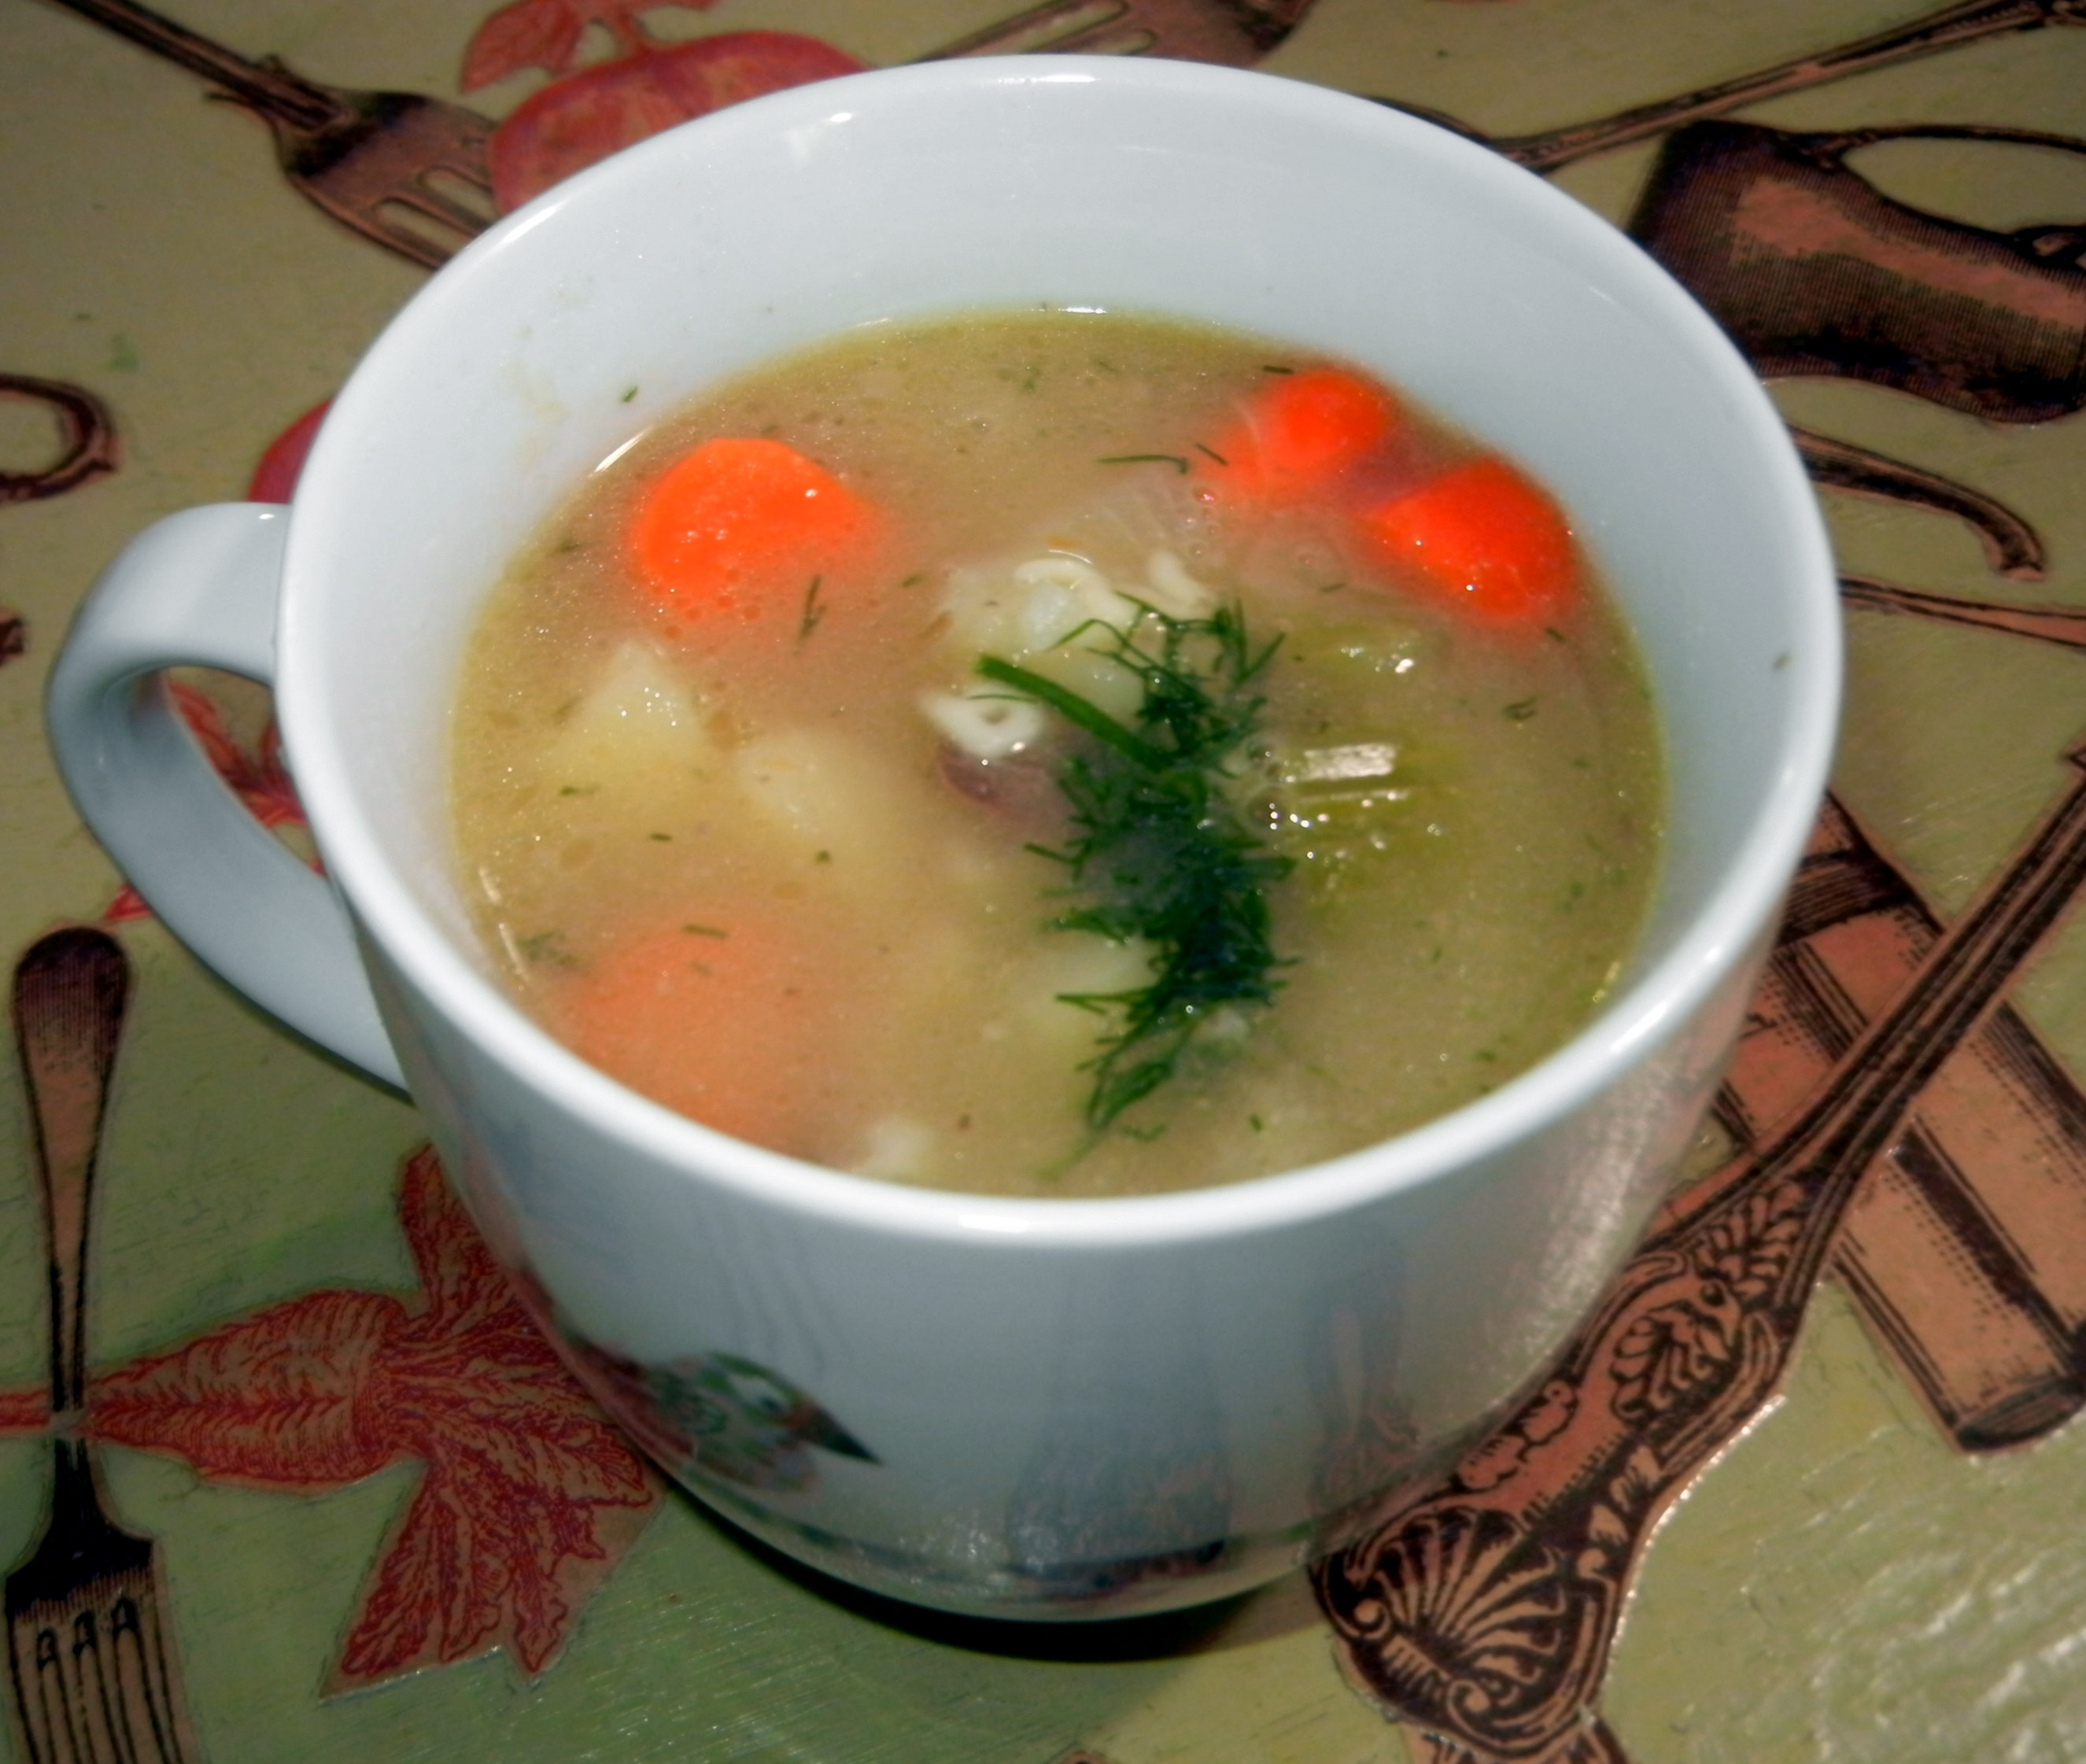 ... Course Soups, Stews and Chili Dry Soup Mixes Barley Mushroom Soup